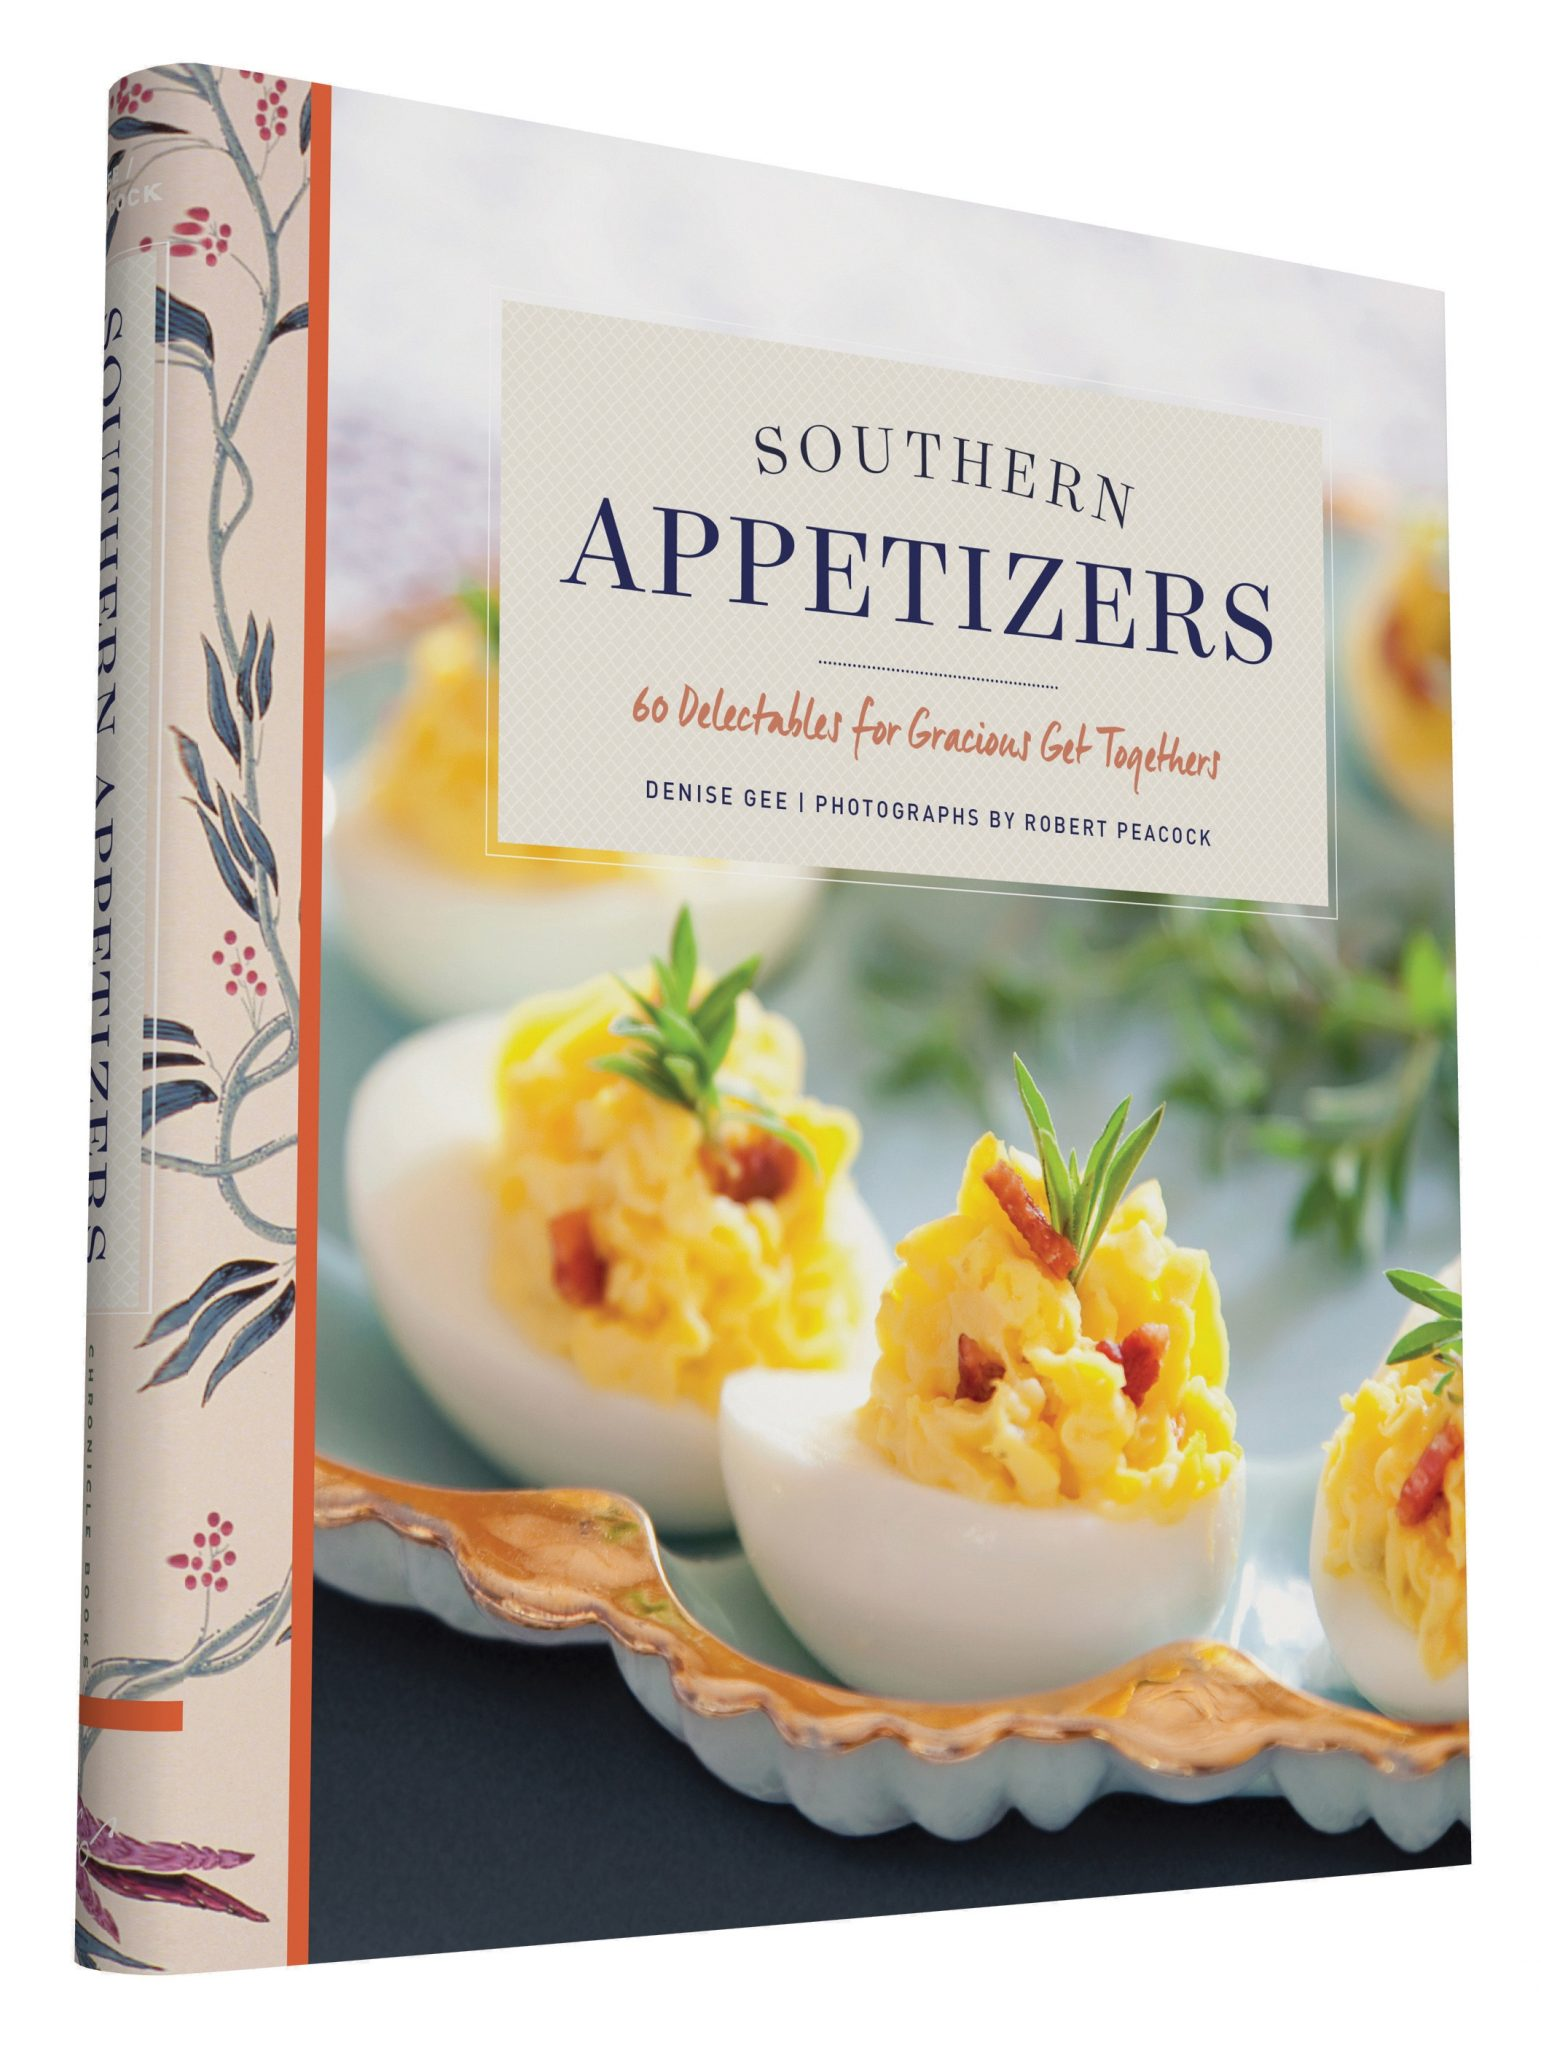 Southern food recipes Archives | Cool Food Dude